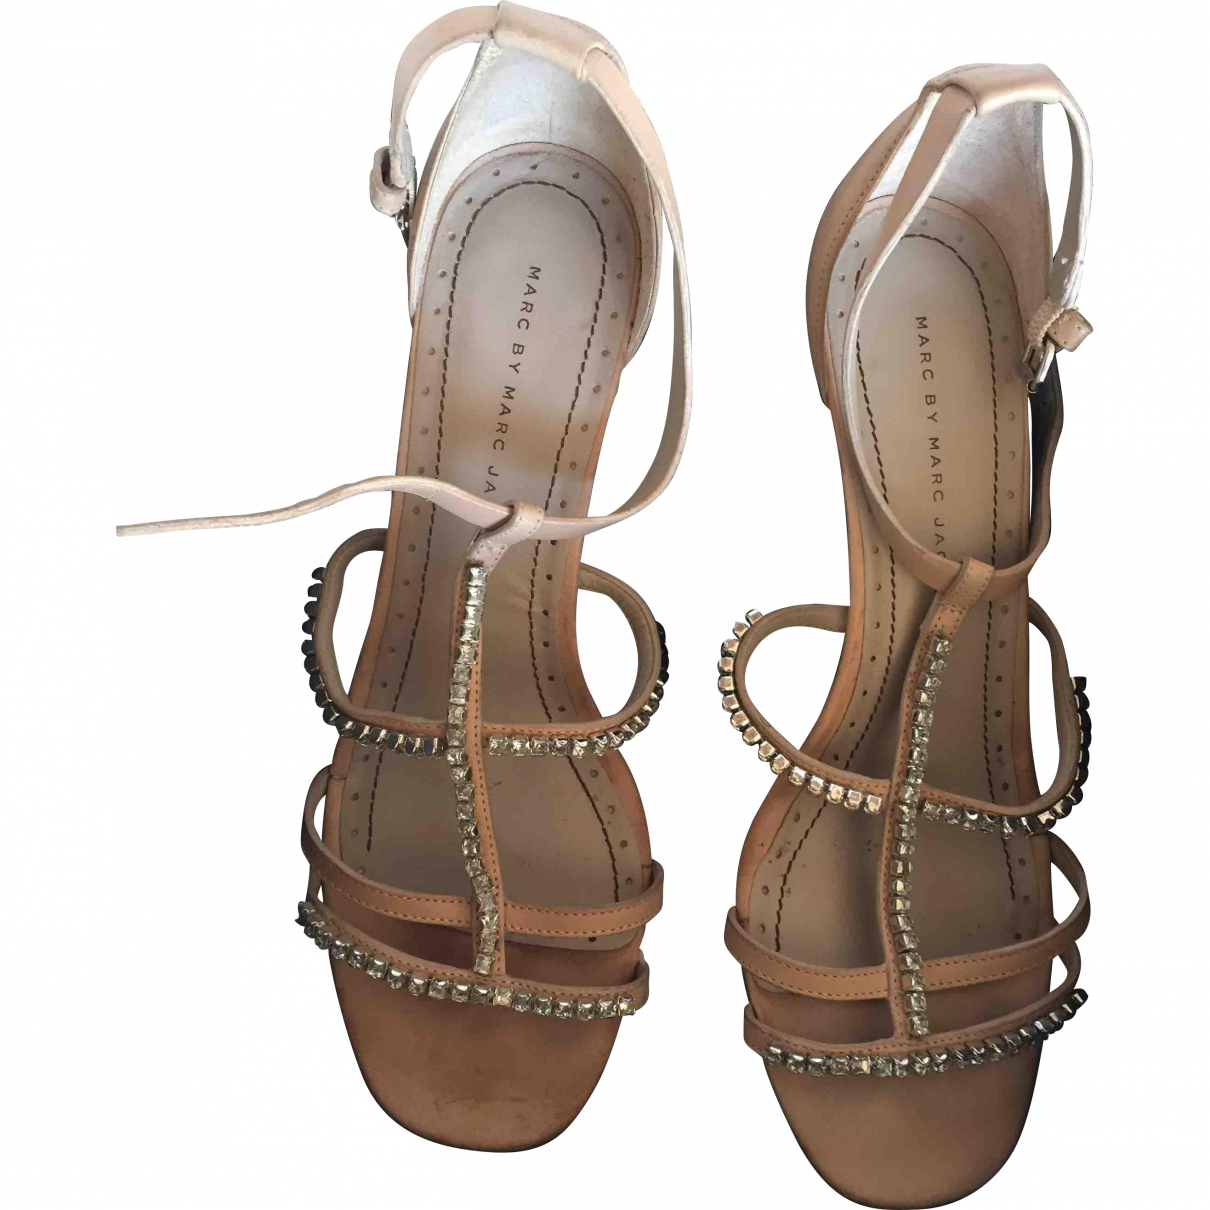 Marc By Marc Jacobs \N Beige Leather Sandals for Women 39 EU